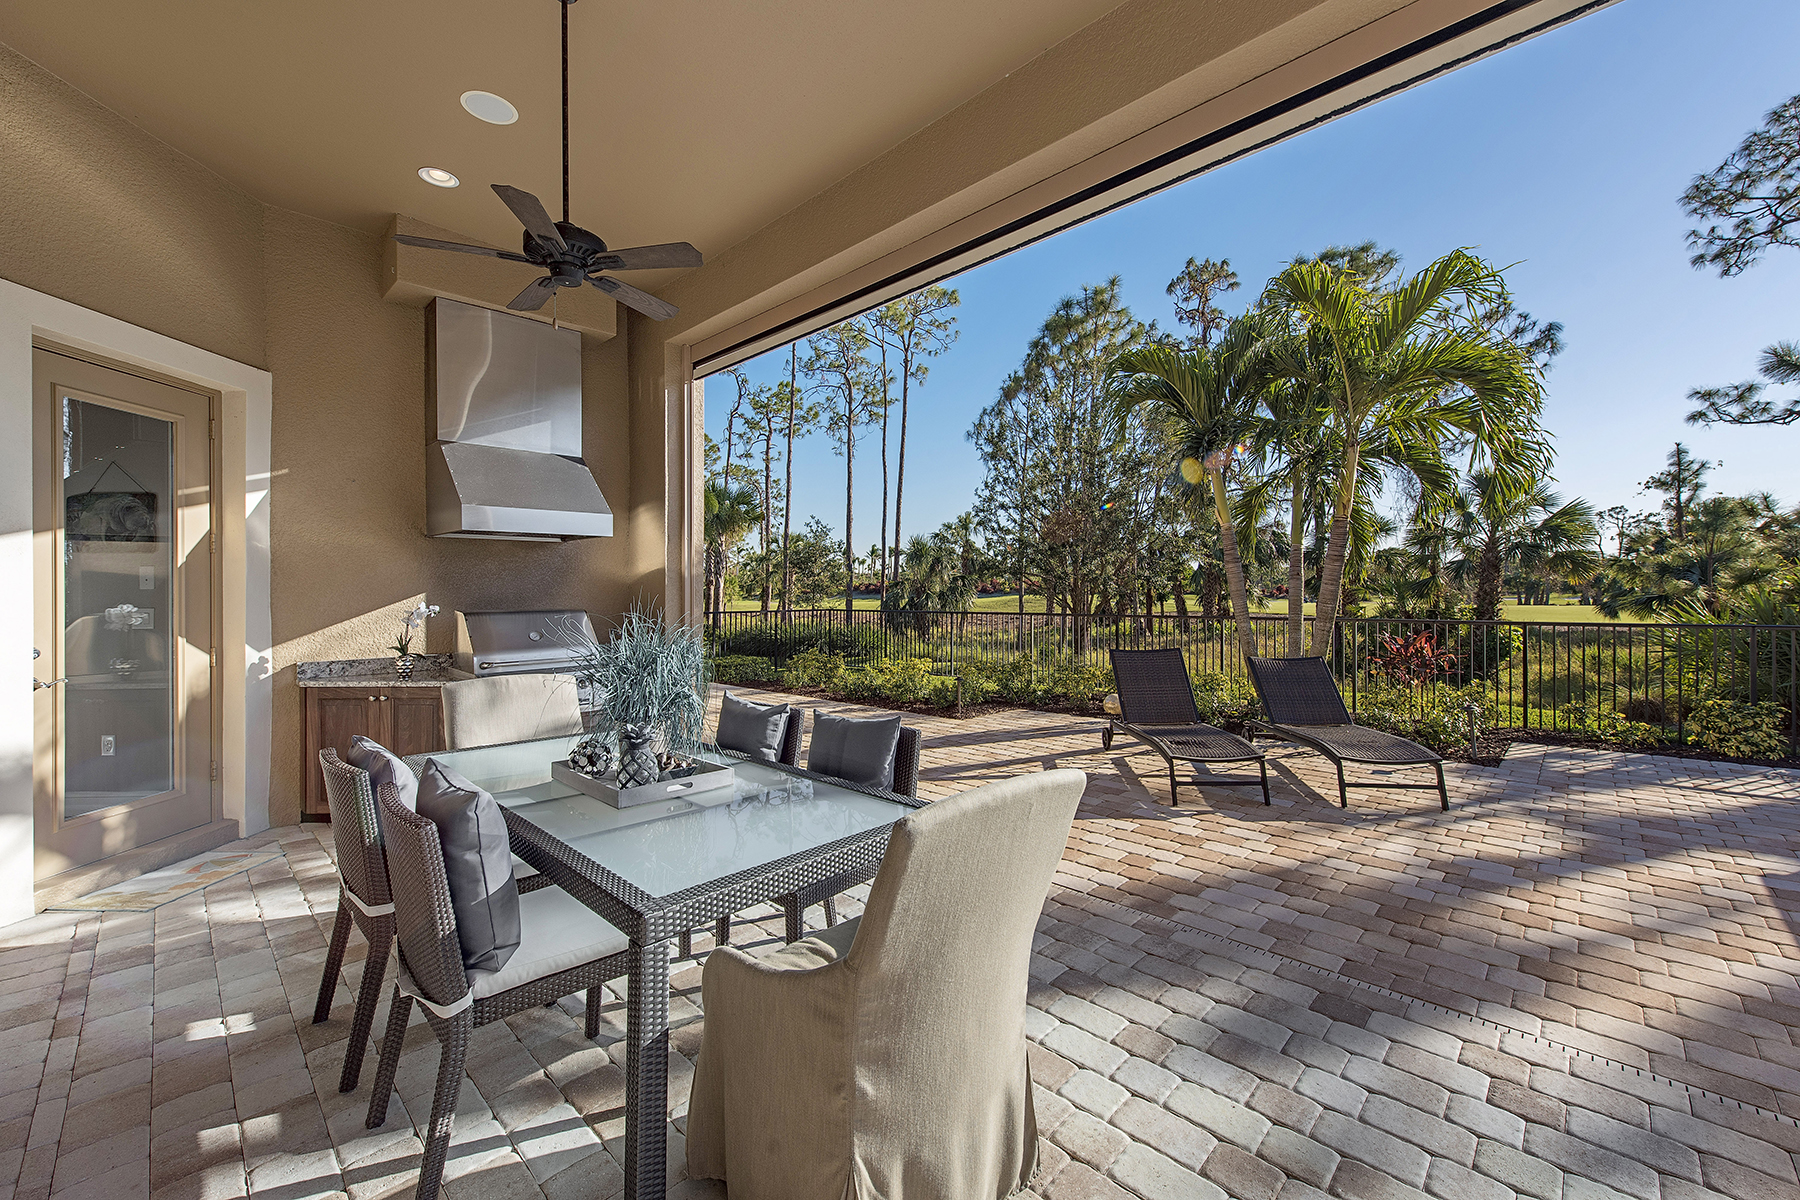 Additional photo for property listing at FIDDLERS CREEK 3740  Mahogany Bend Dr,  Naples, Florida 34114 United States